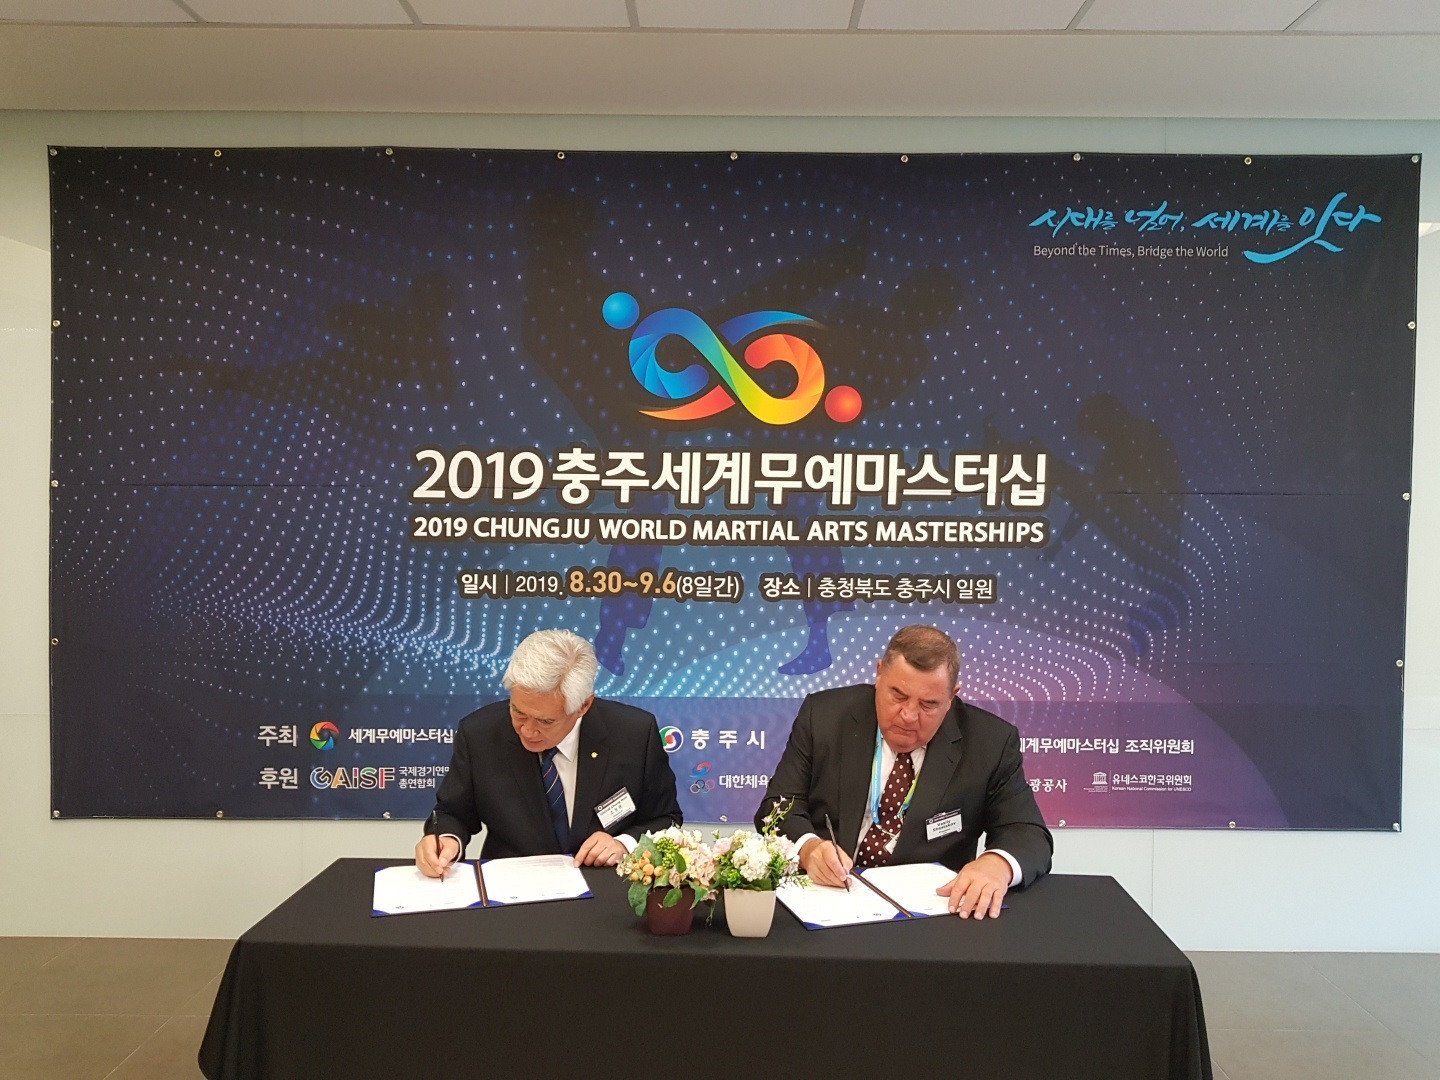 The signing ceremony took place during the 2019 World Martial Arts Masterships in Chungju ©World Taekwondo